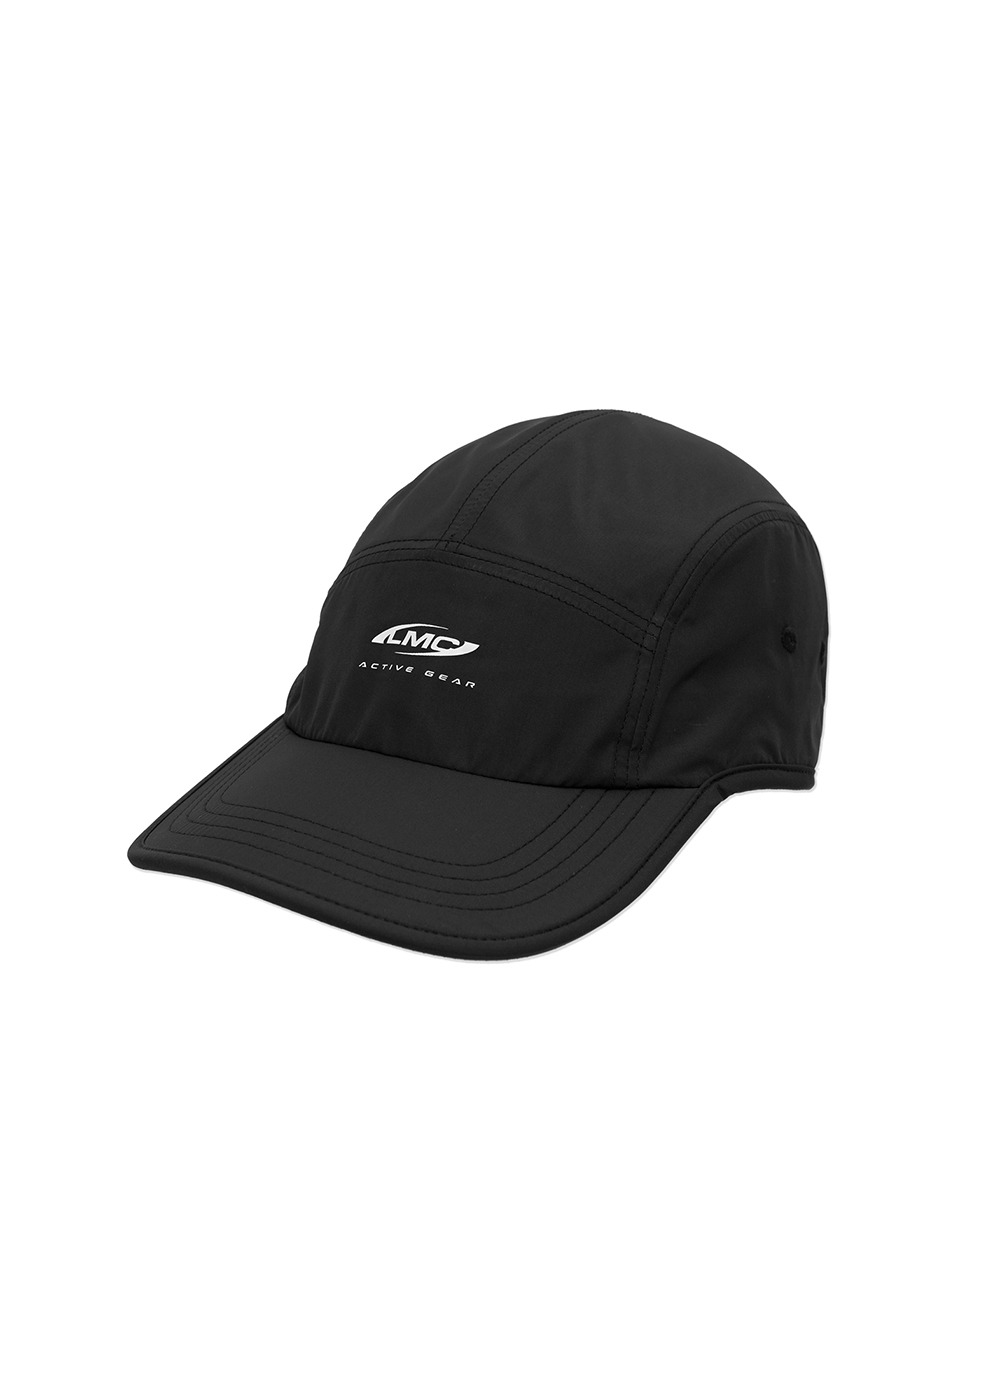 LMC ACTIVE GEAR RUNNING CAP black